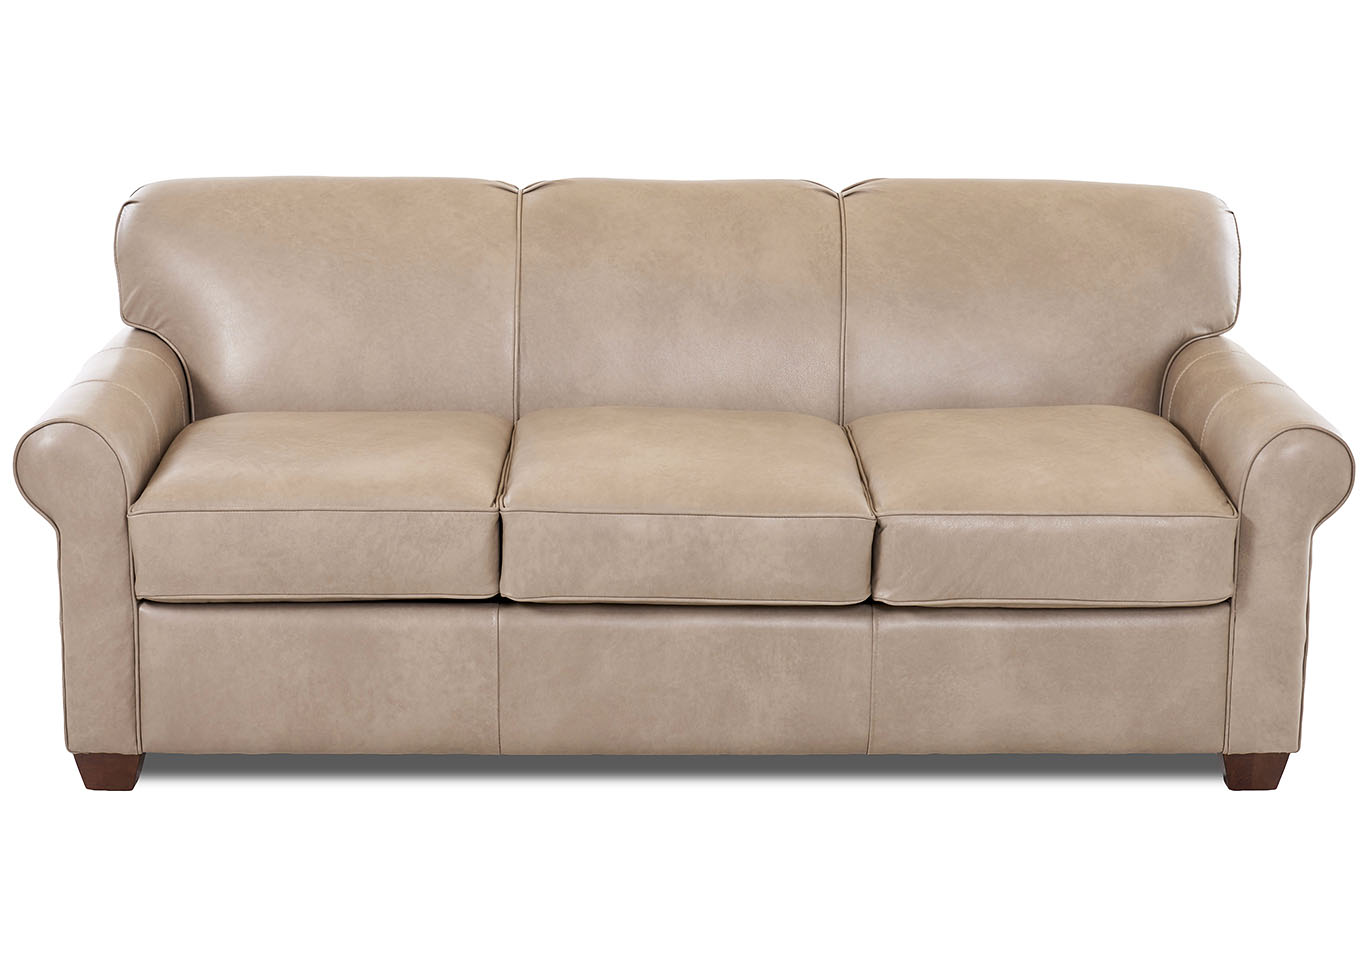 Mayhew Steamboat Putty Brown Leather Sleeper Sofa,Klaussner Home Furnishings